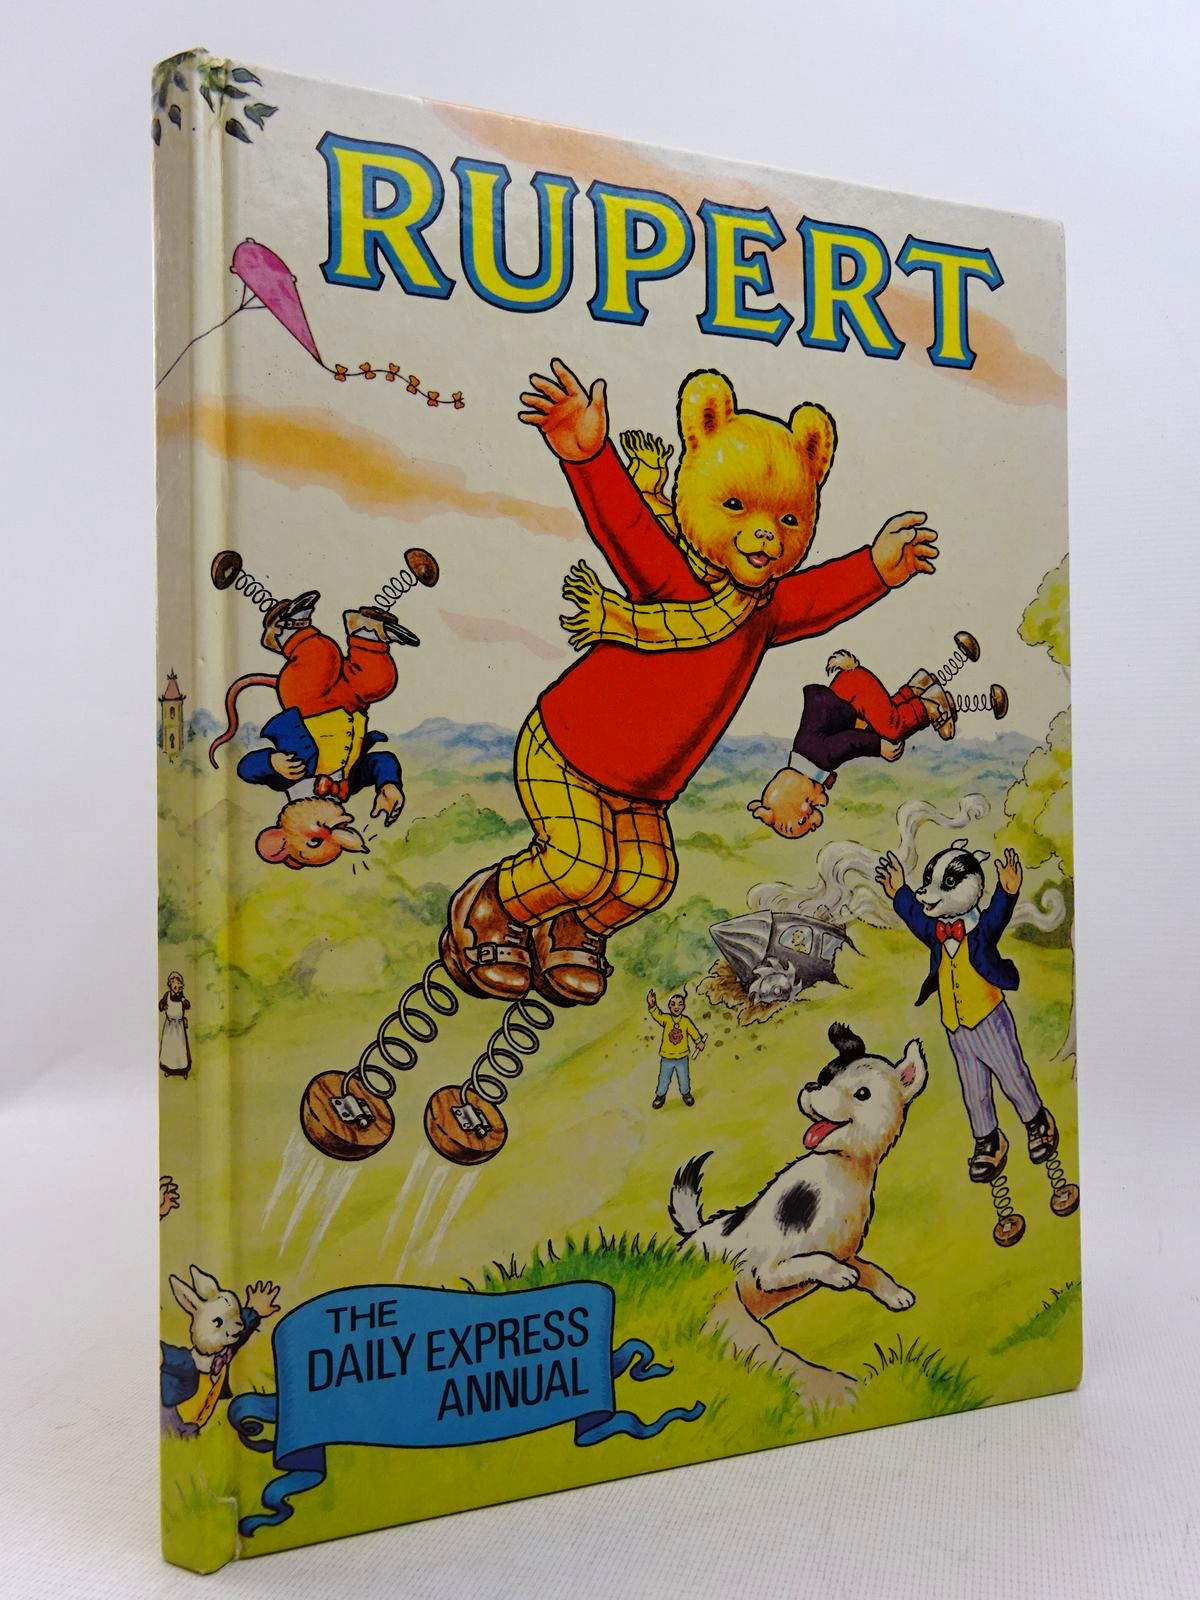 Photo of RUPERT ANNUAL 1982 illustrated by Harrold, John published by Express Newspapers Ltd. (STOCK CODE: 1817124)  for sale by Stella & Rose's Books